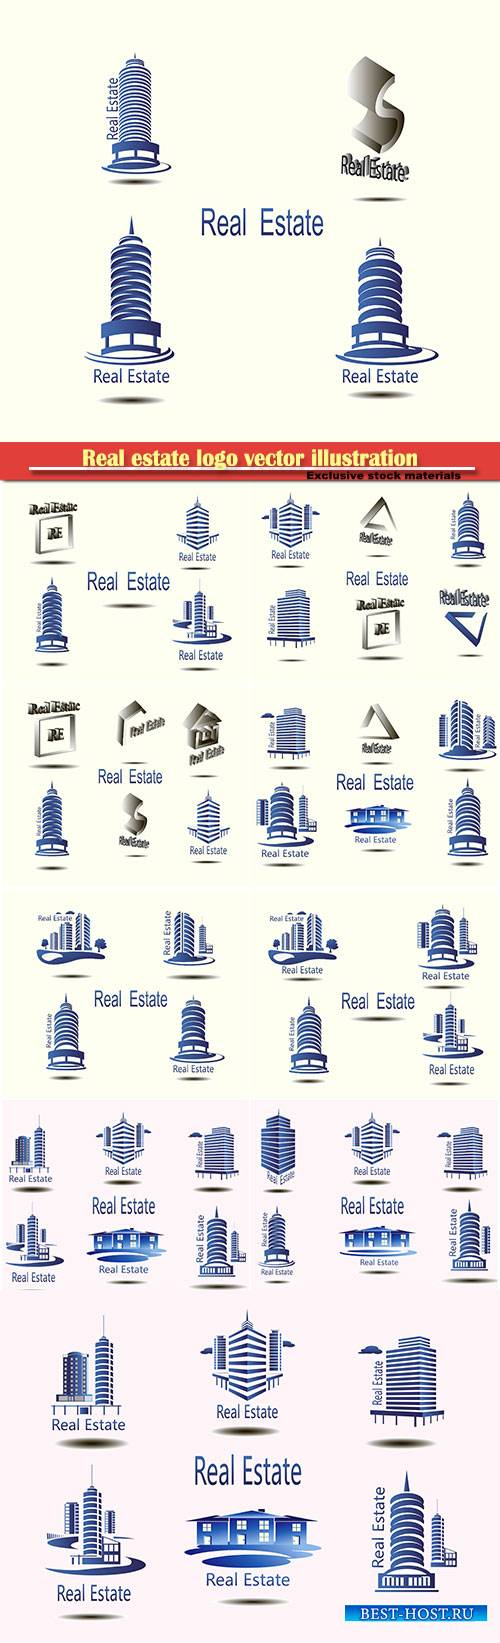 Real estate logo vector illustration